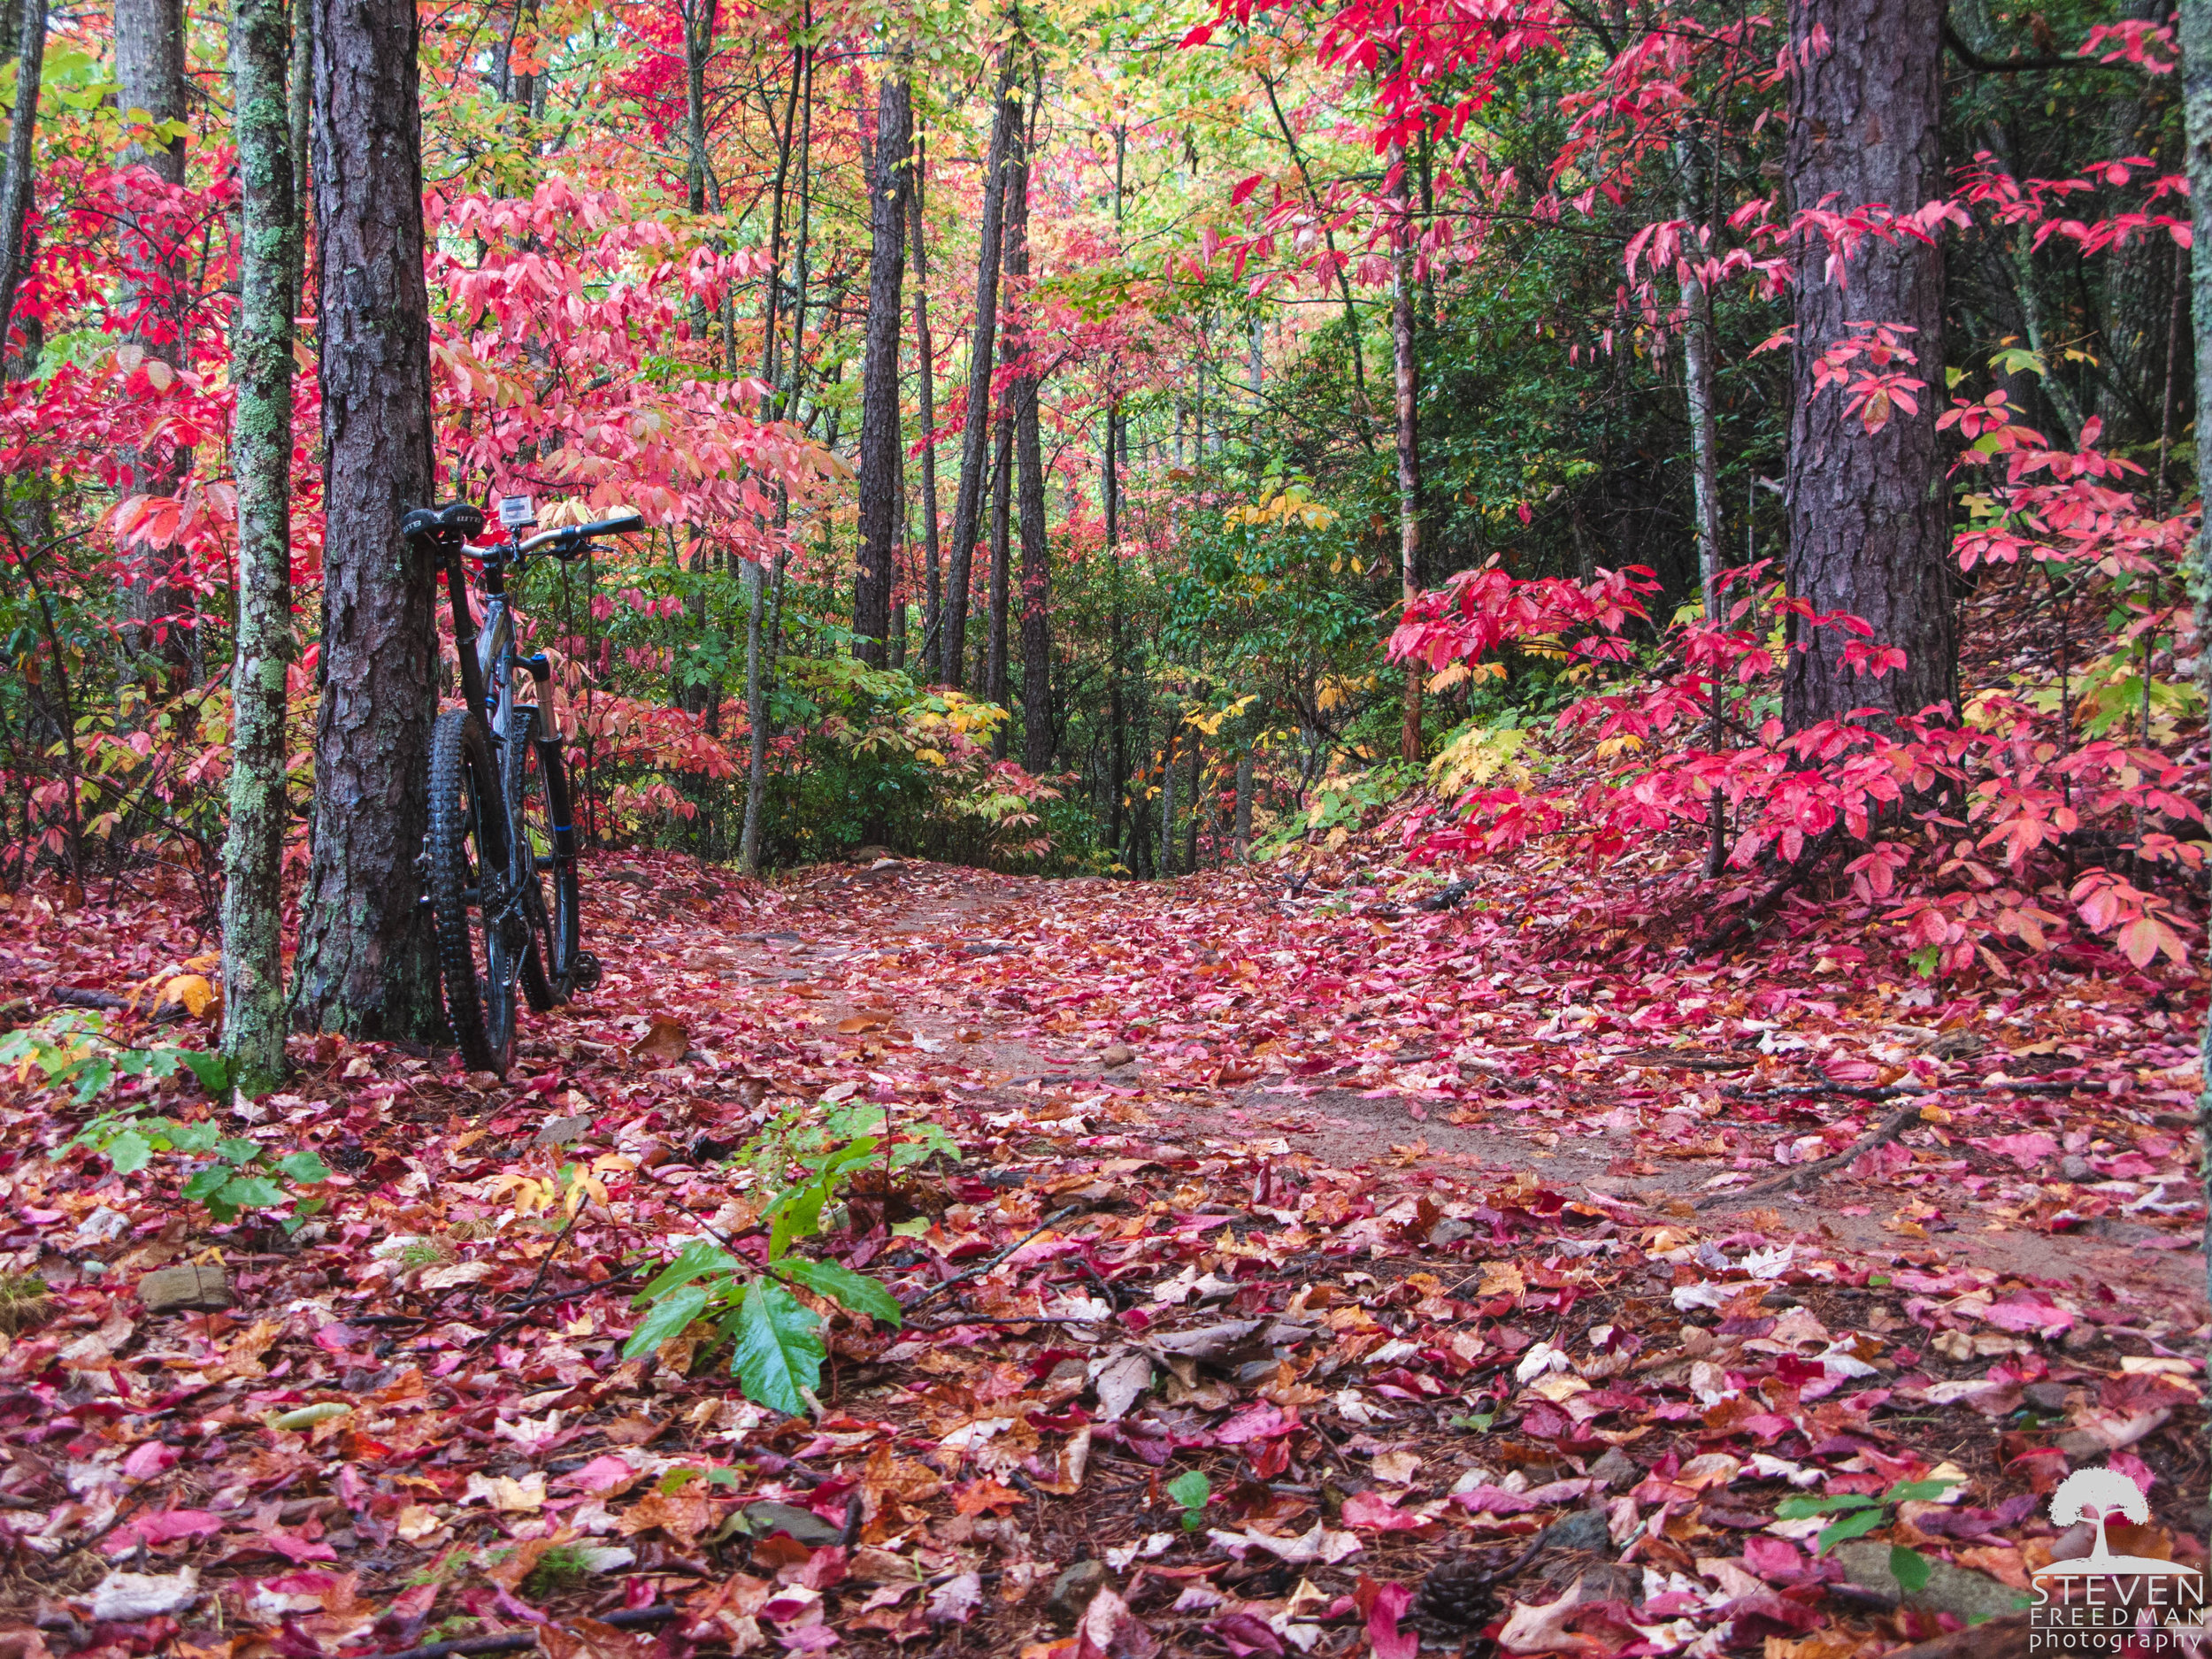 Red Delight in this section of trail that is full of Sourwood trees.